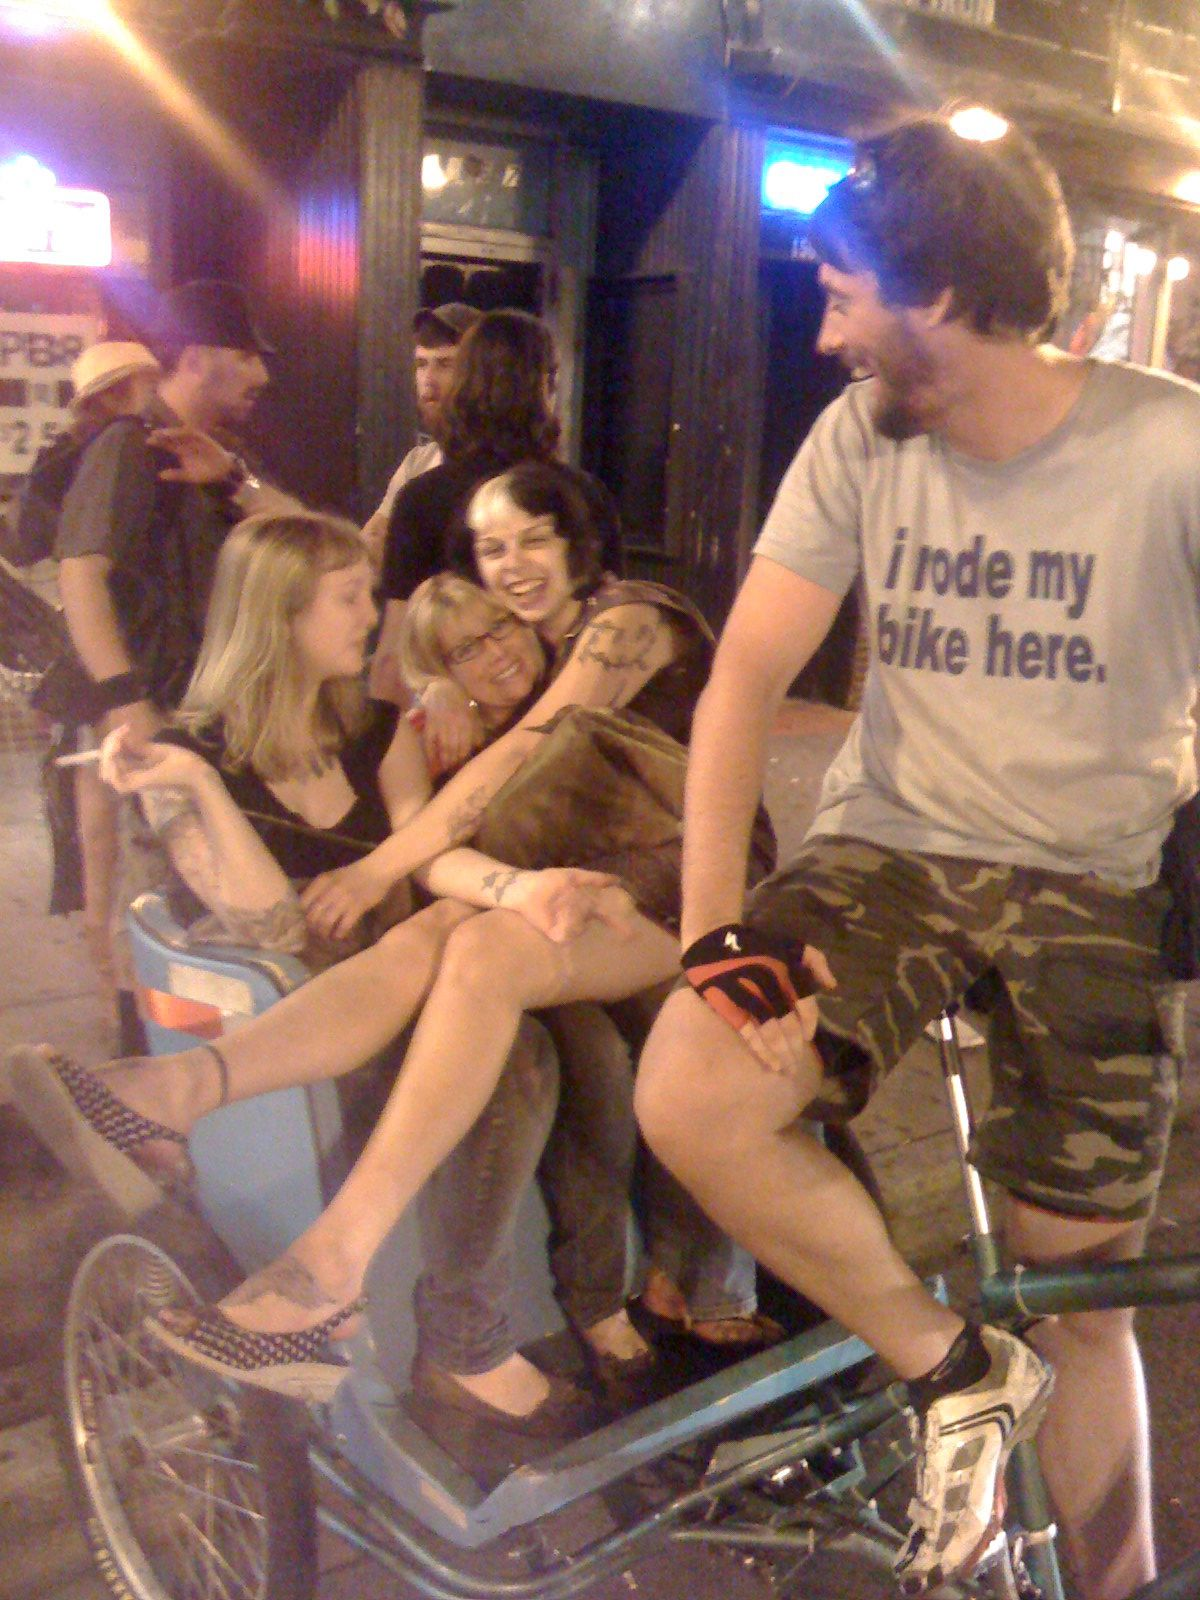 The best pedicabs are available to the best pedicabbers at Movmeint Bike Cab